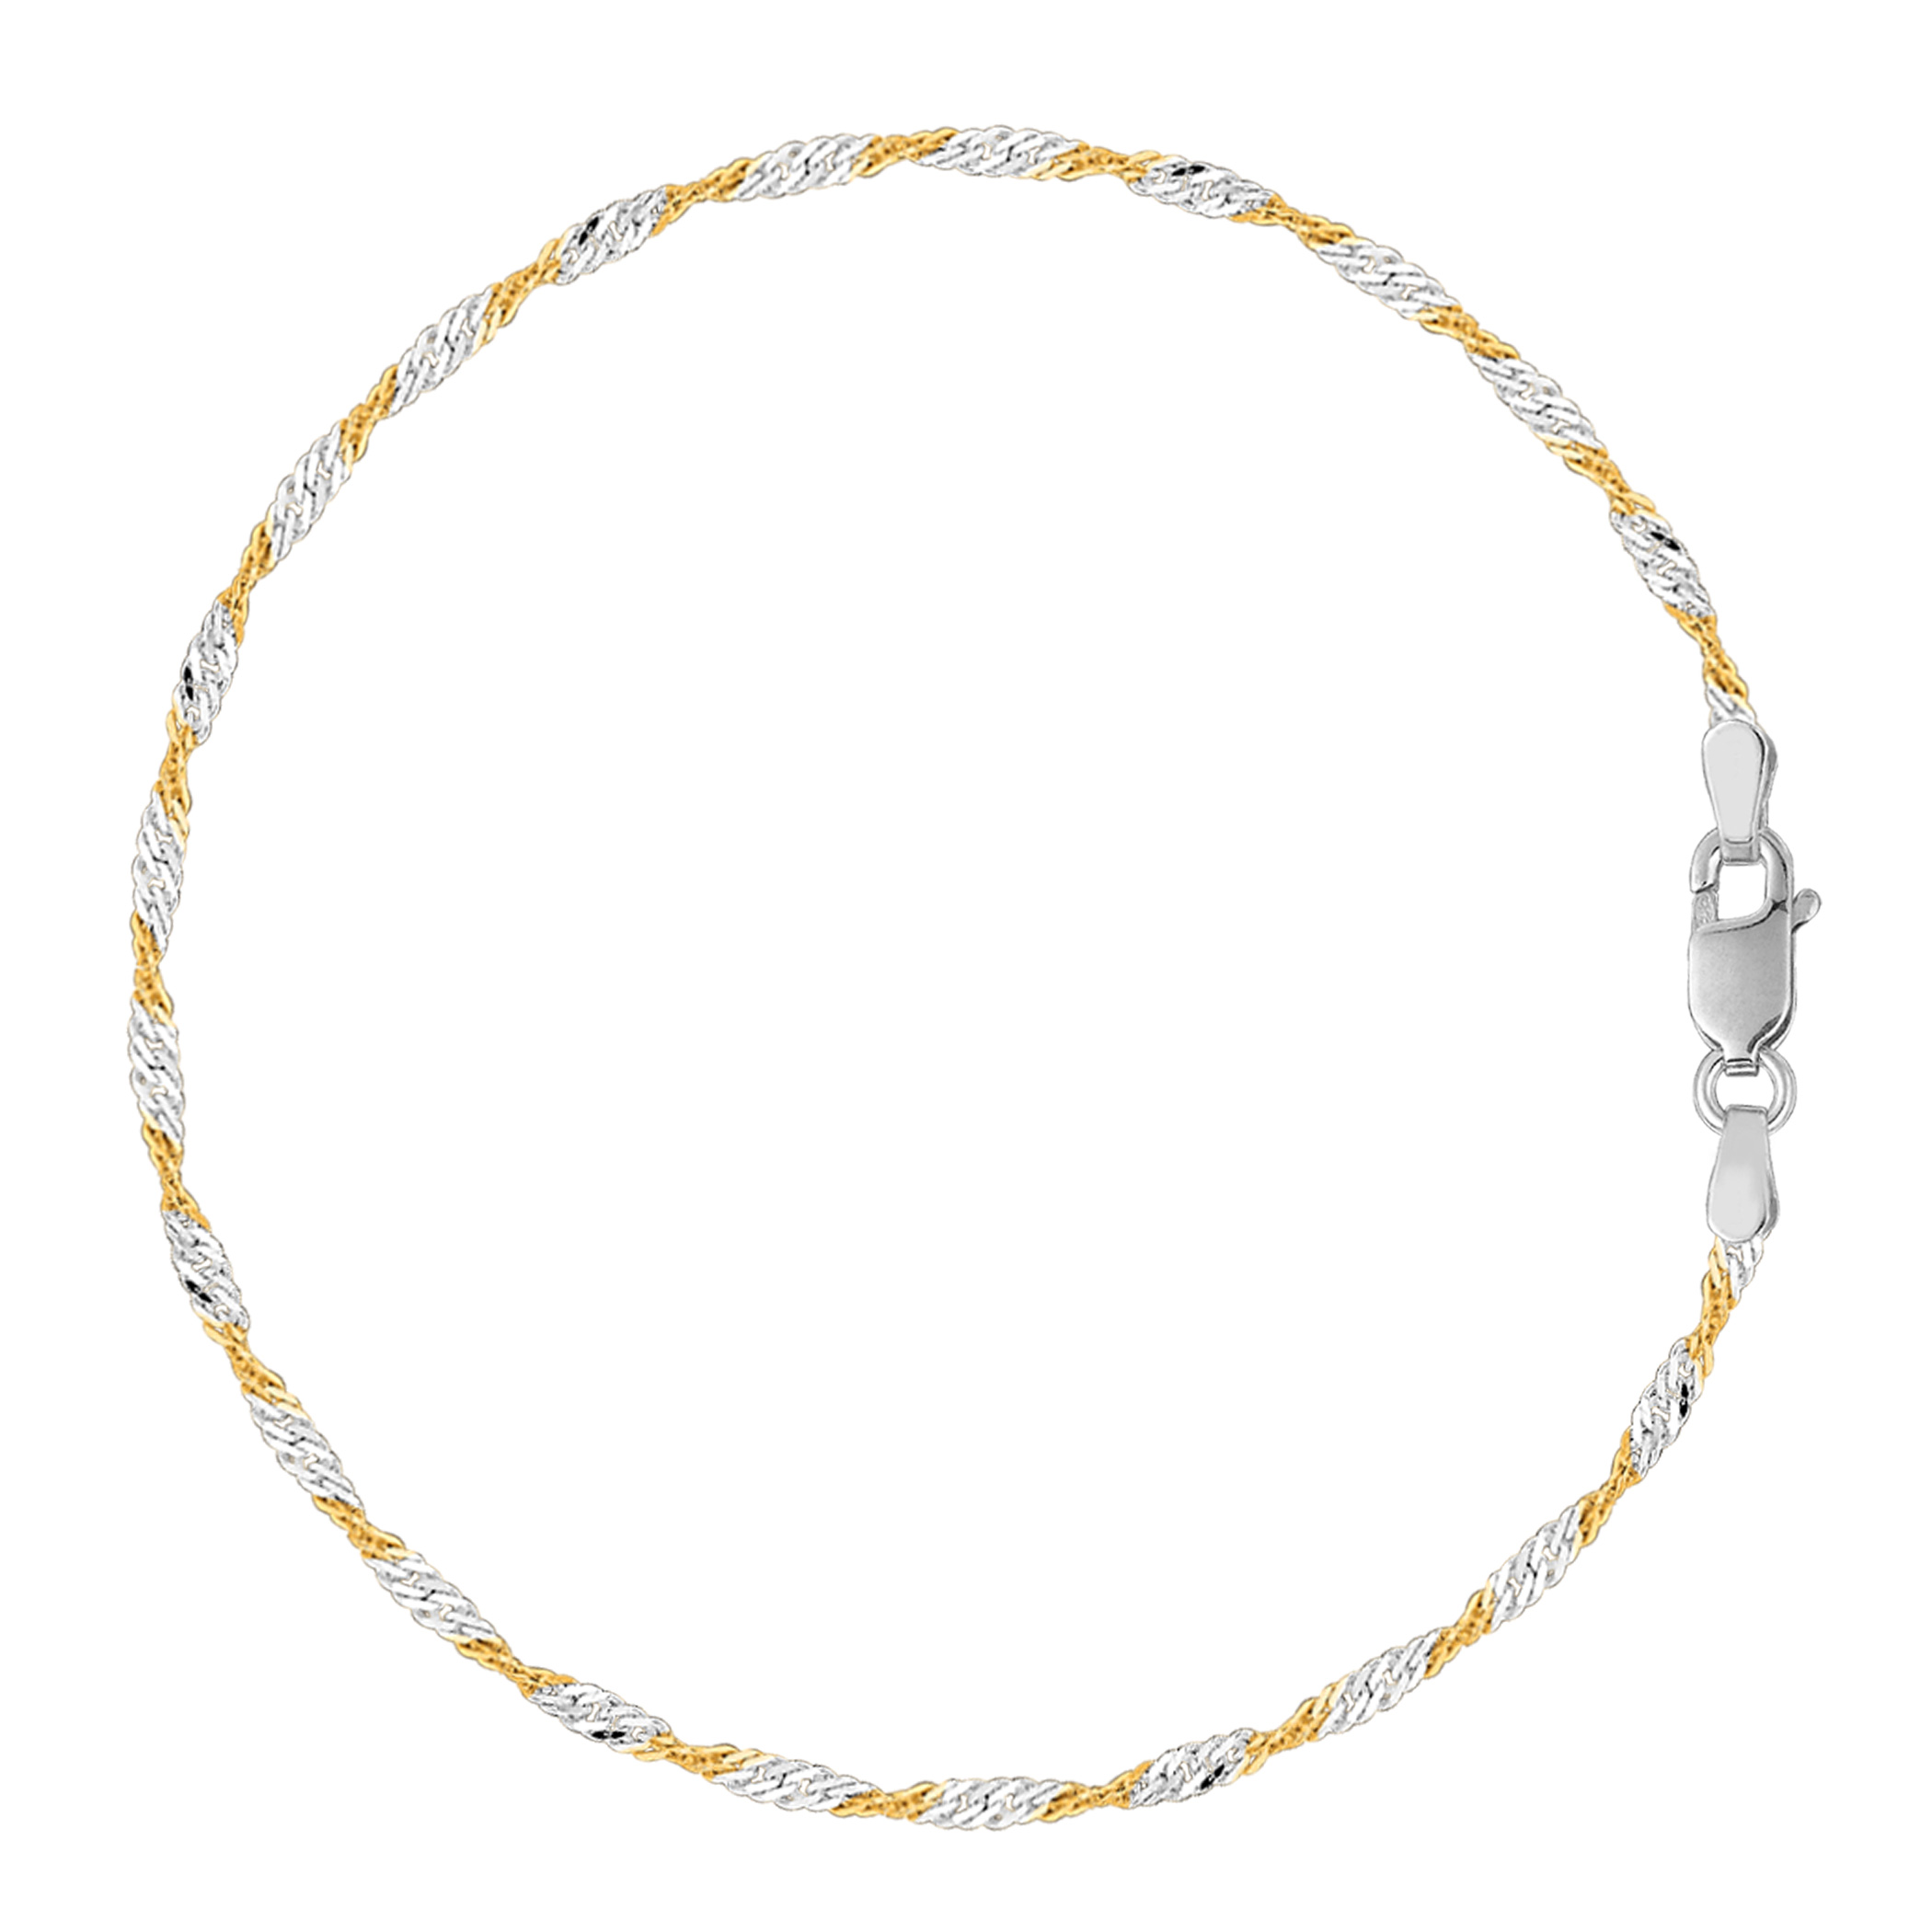 White And Yellow Singapore Style Chain Anklet In Sterling Silver, 9″